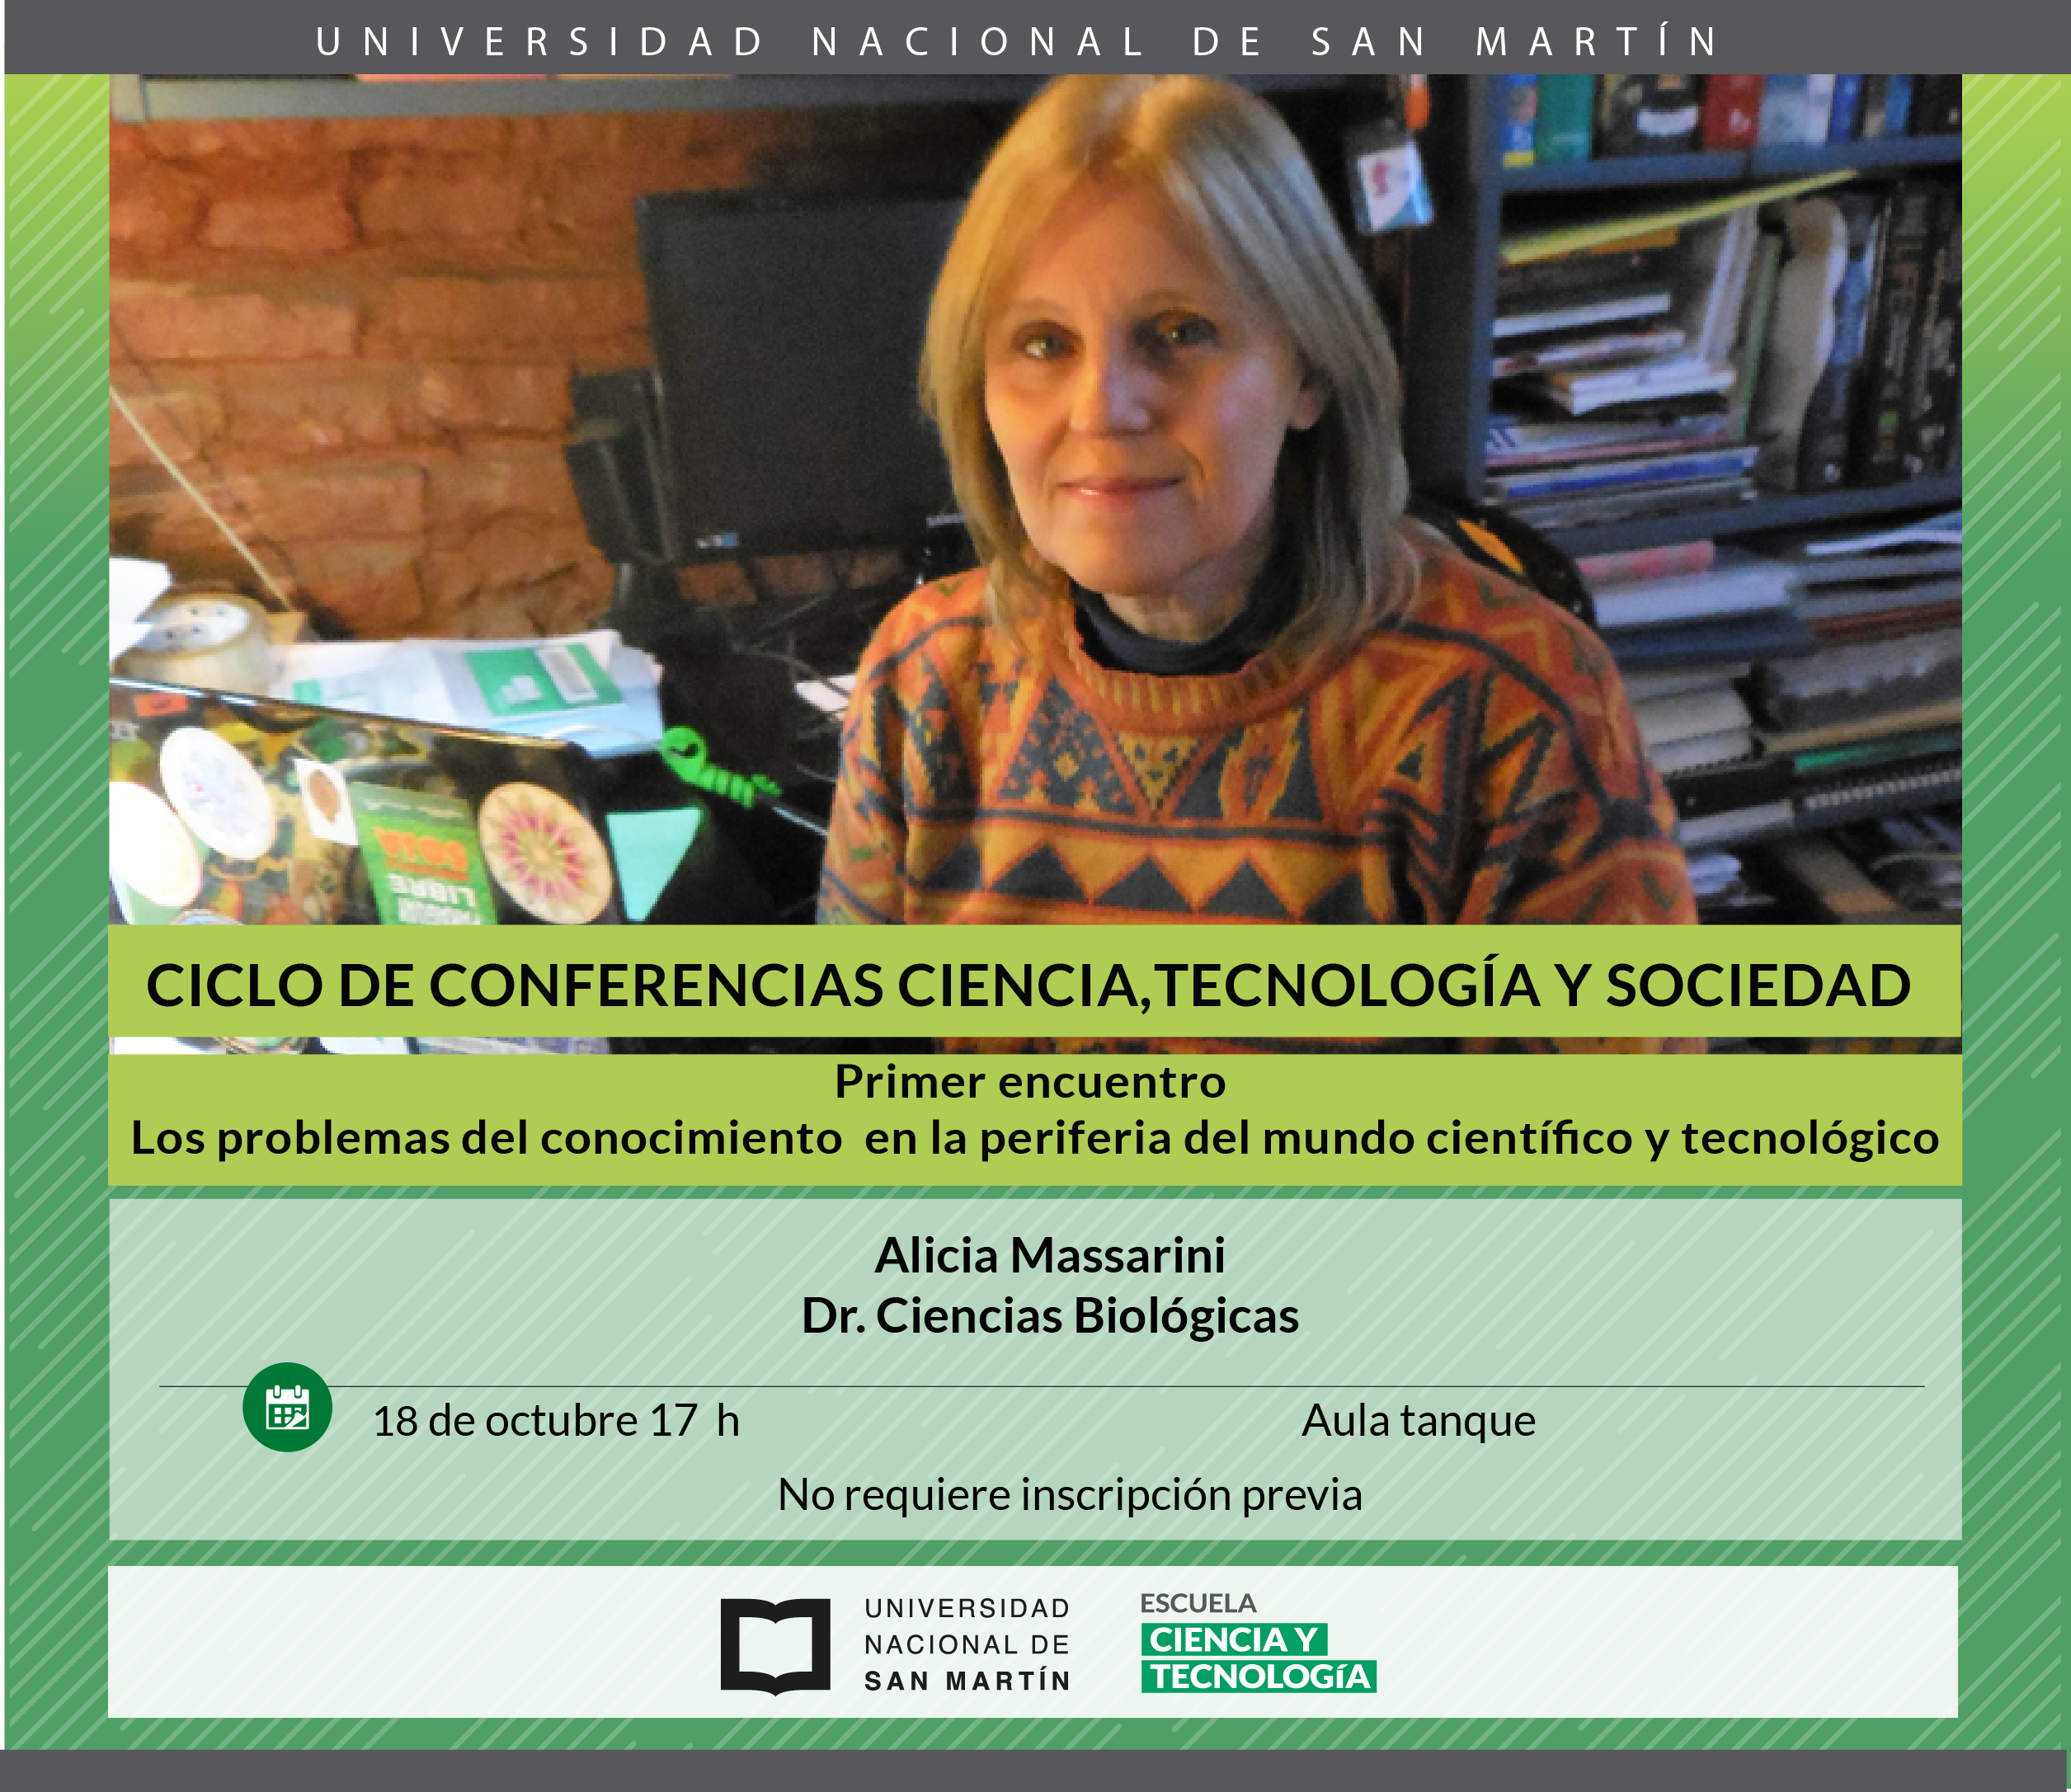 flayer-ciclo-de-conferencias-cts-1